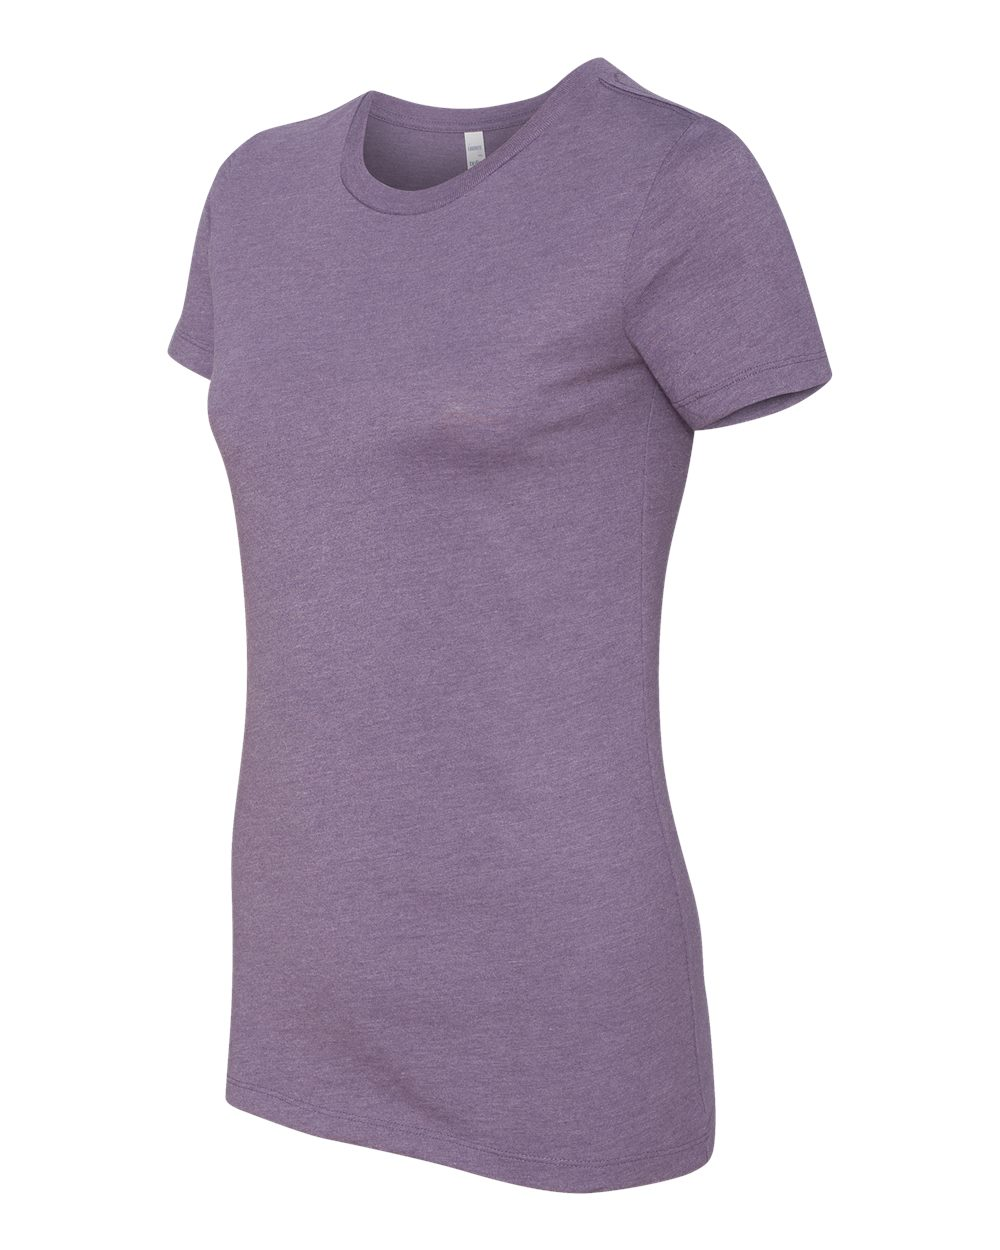 Bella-Canvas-Womens-The-Favorite-T-Shirt-6004-Size-S-2XL thumbnail 80